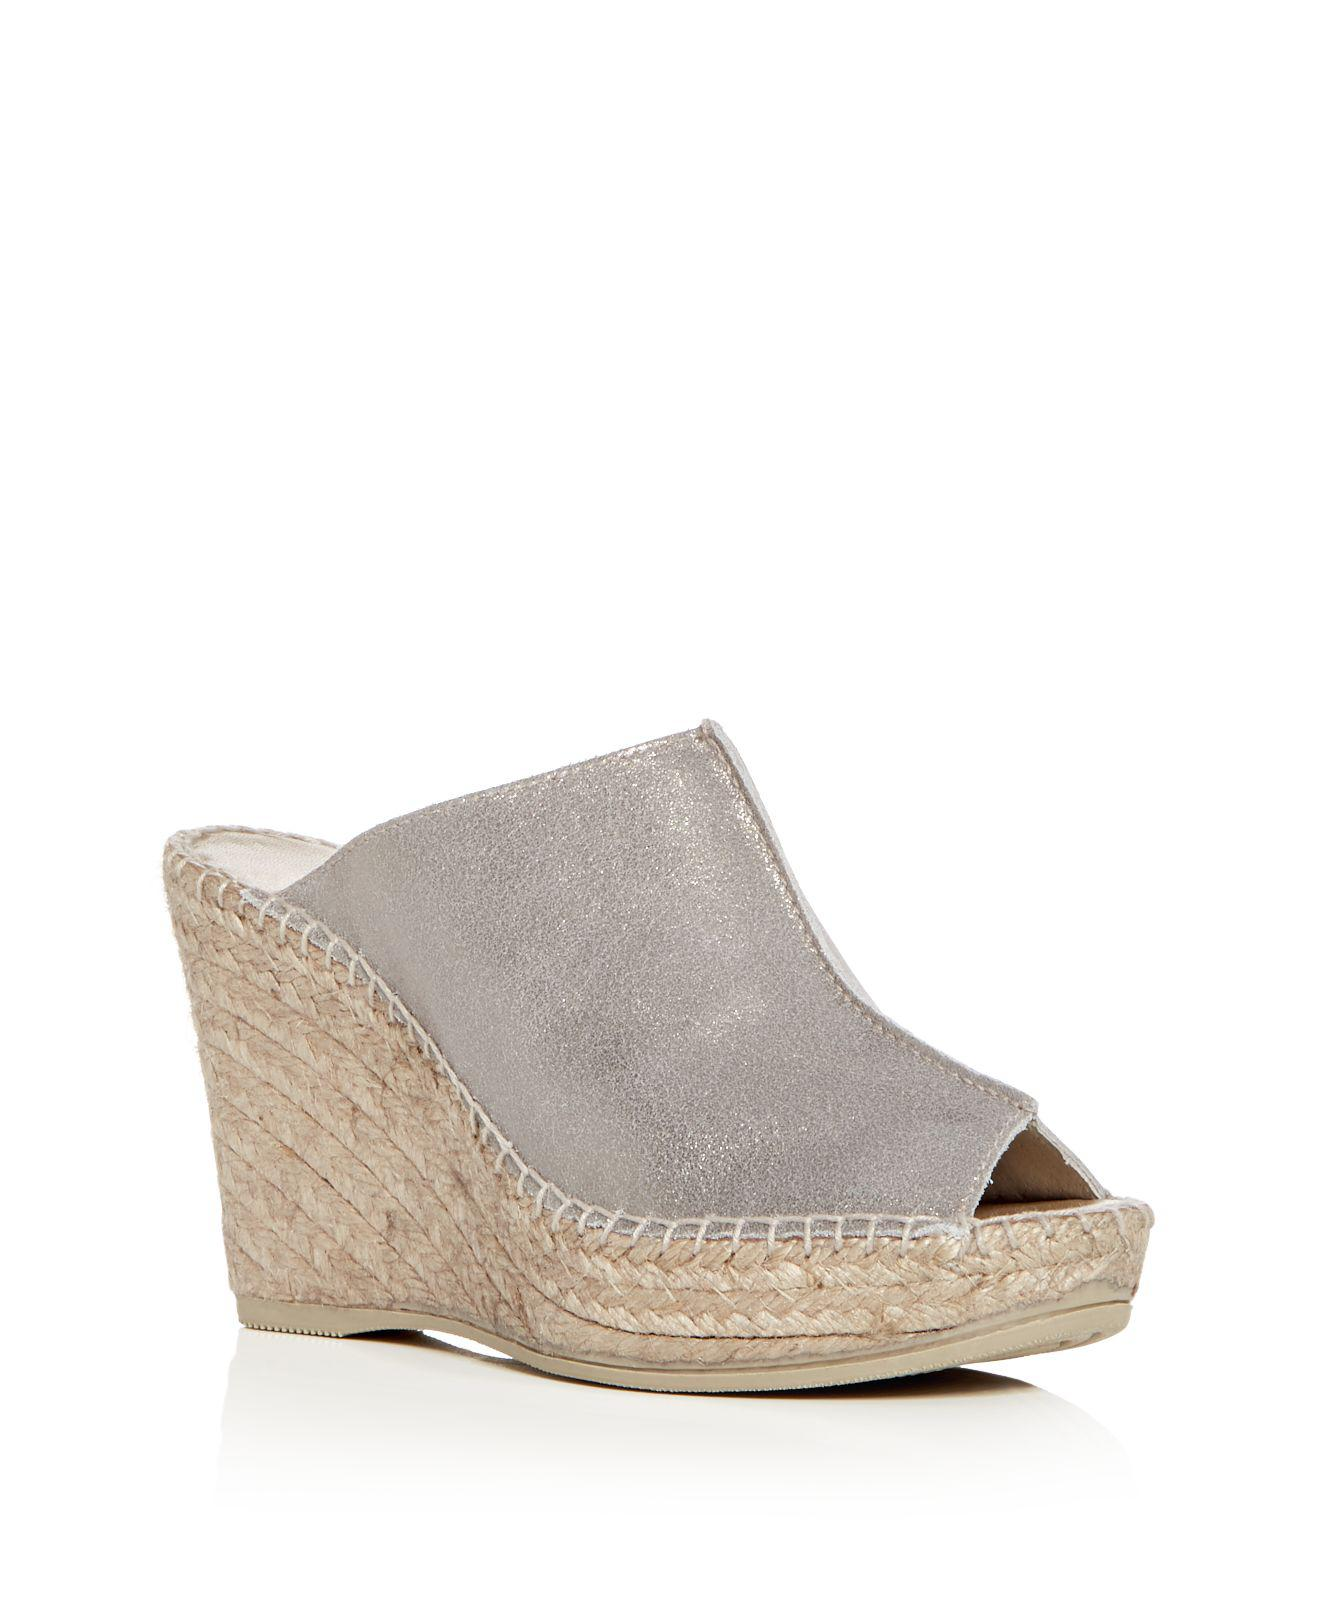 Andre Assous Cici-AA Espadrille Wedge Sandal (Women's)